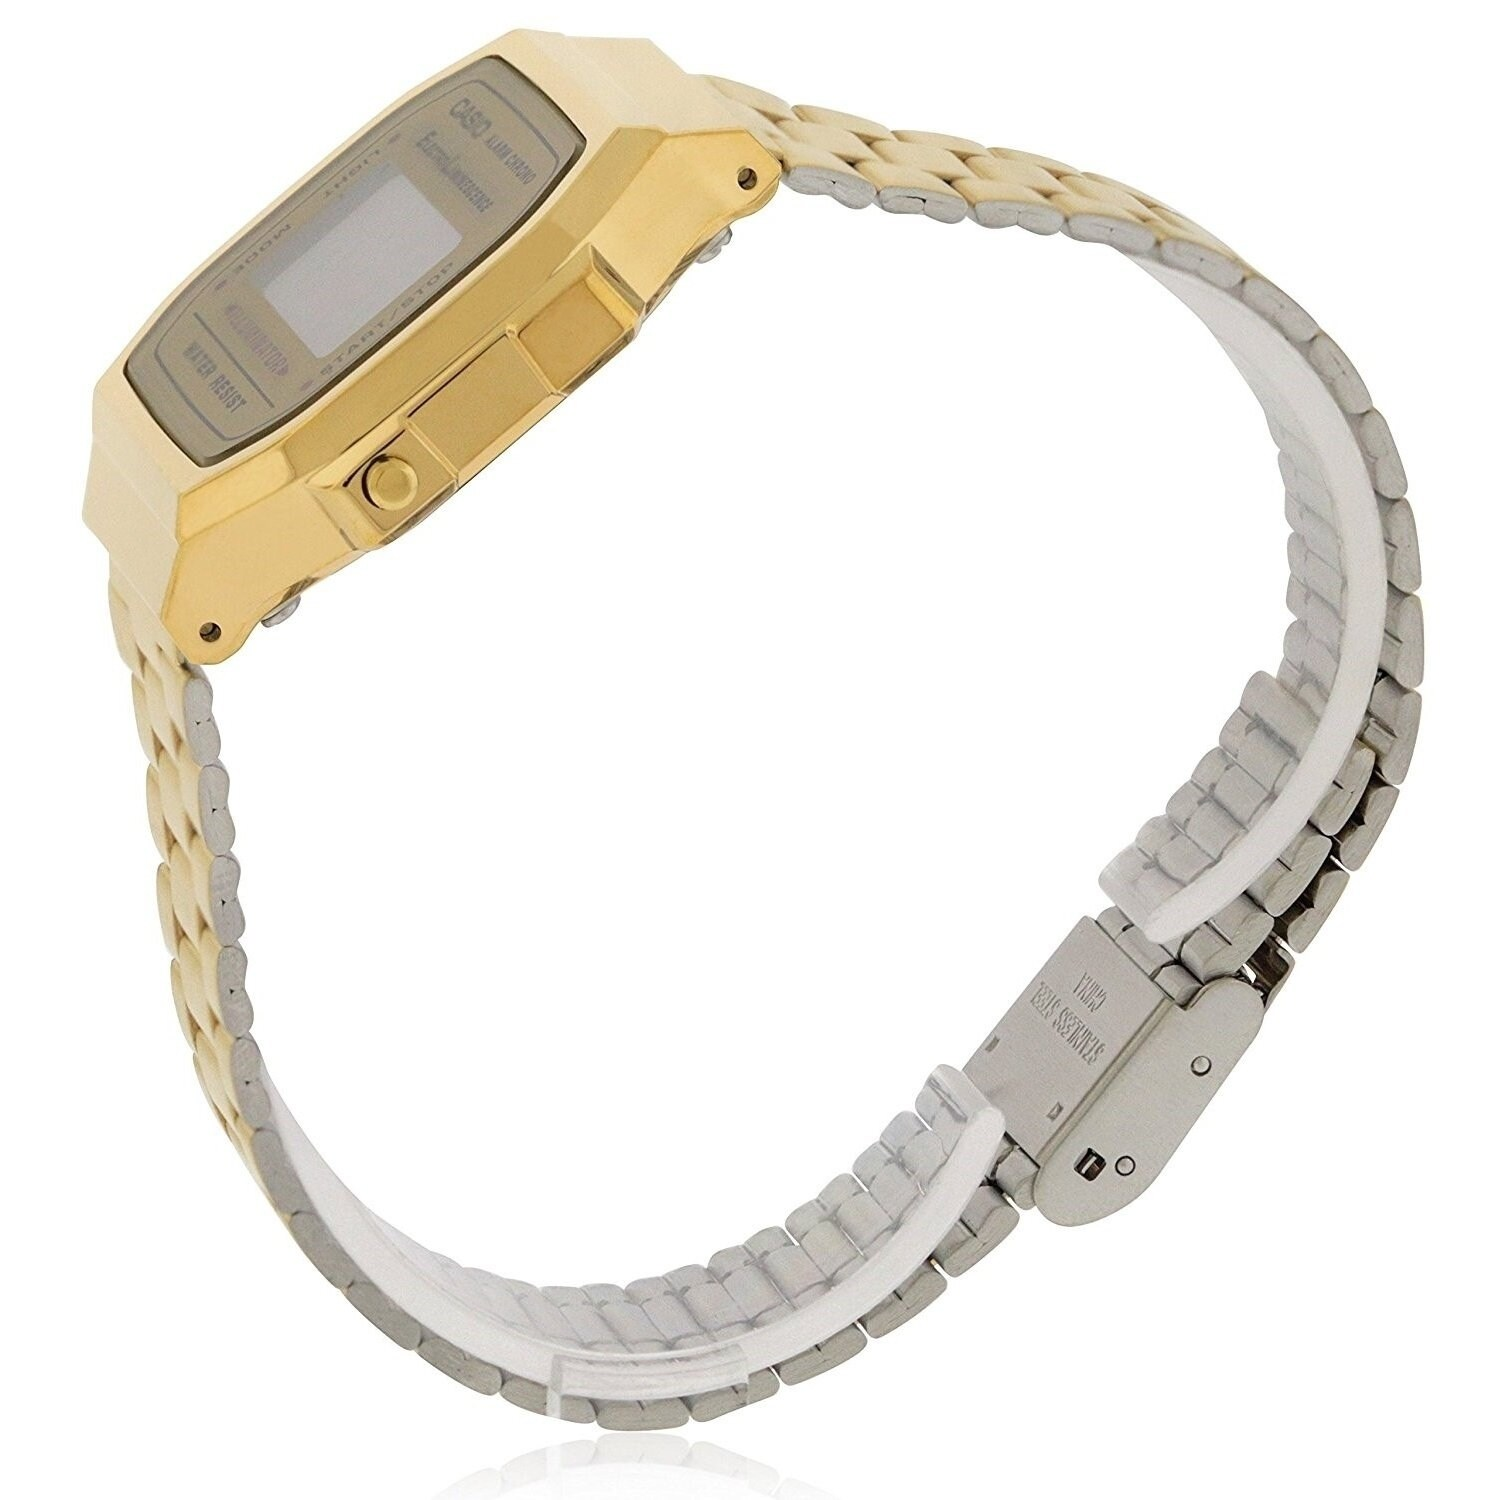 5d275b3bc Shop Casio Men's 'Vintage' Digital Illuminator Gold-Tone Stainless Steel  Watch - Free Shipping Today - Overstock - 20904268